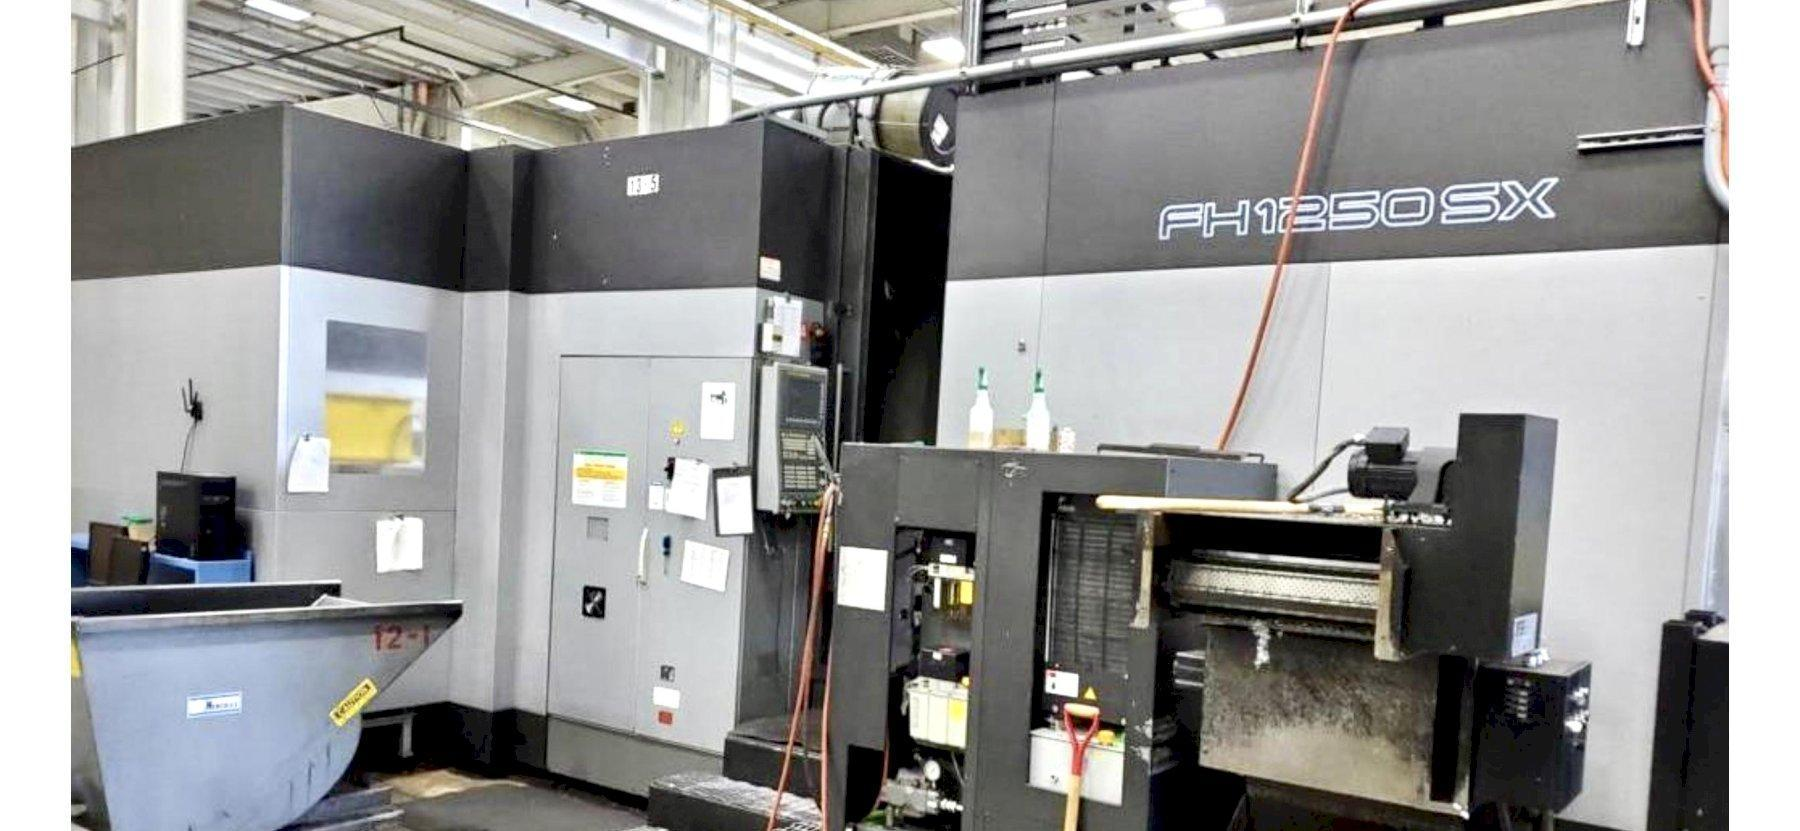 Toyoda FH-1250SX Horizontal Machining Center , Fanuc 310i-Model A Controls, 6K RPM, 